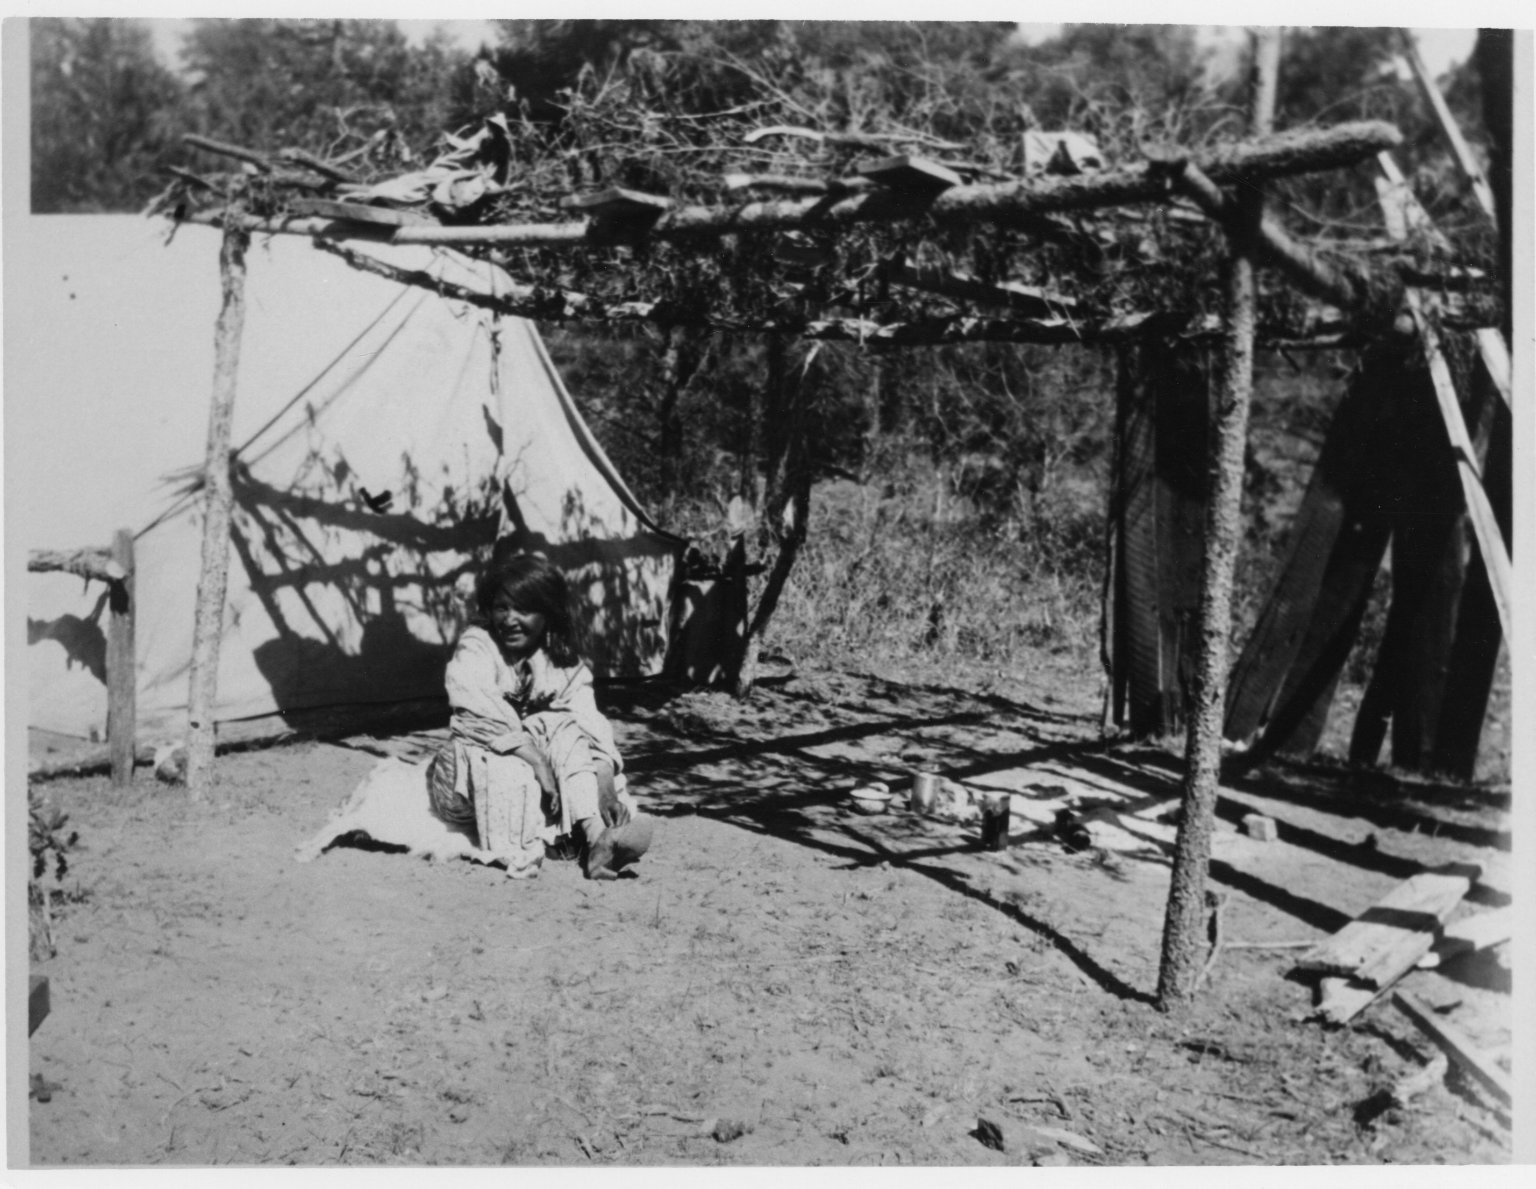 Camp scene showing tent with adjacent ramada.